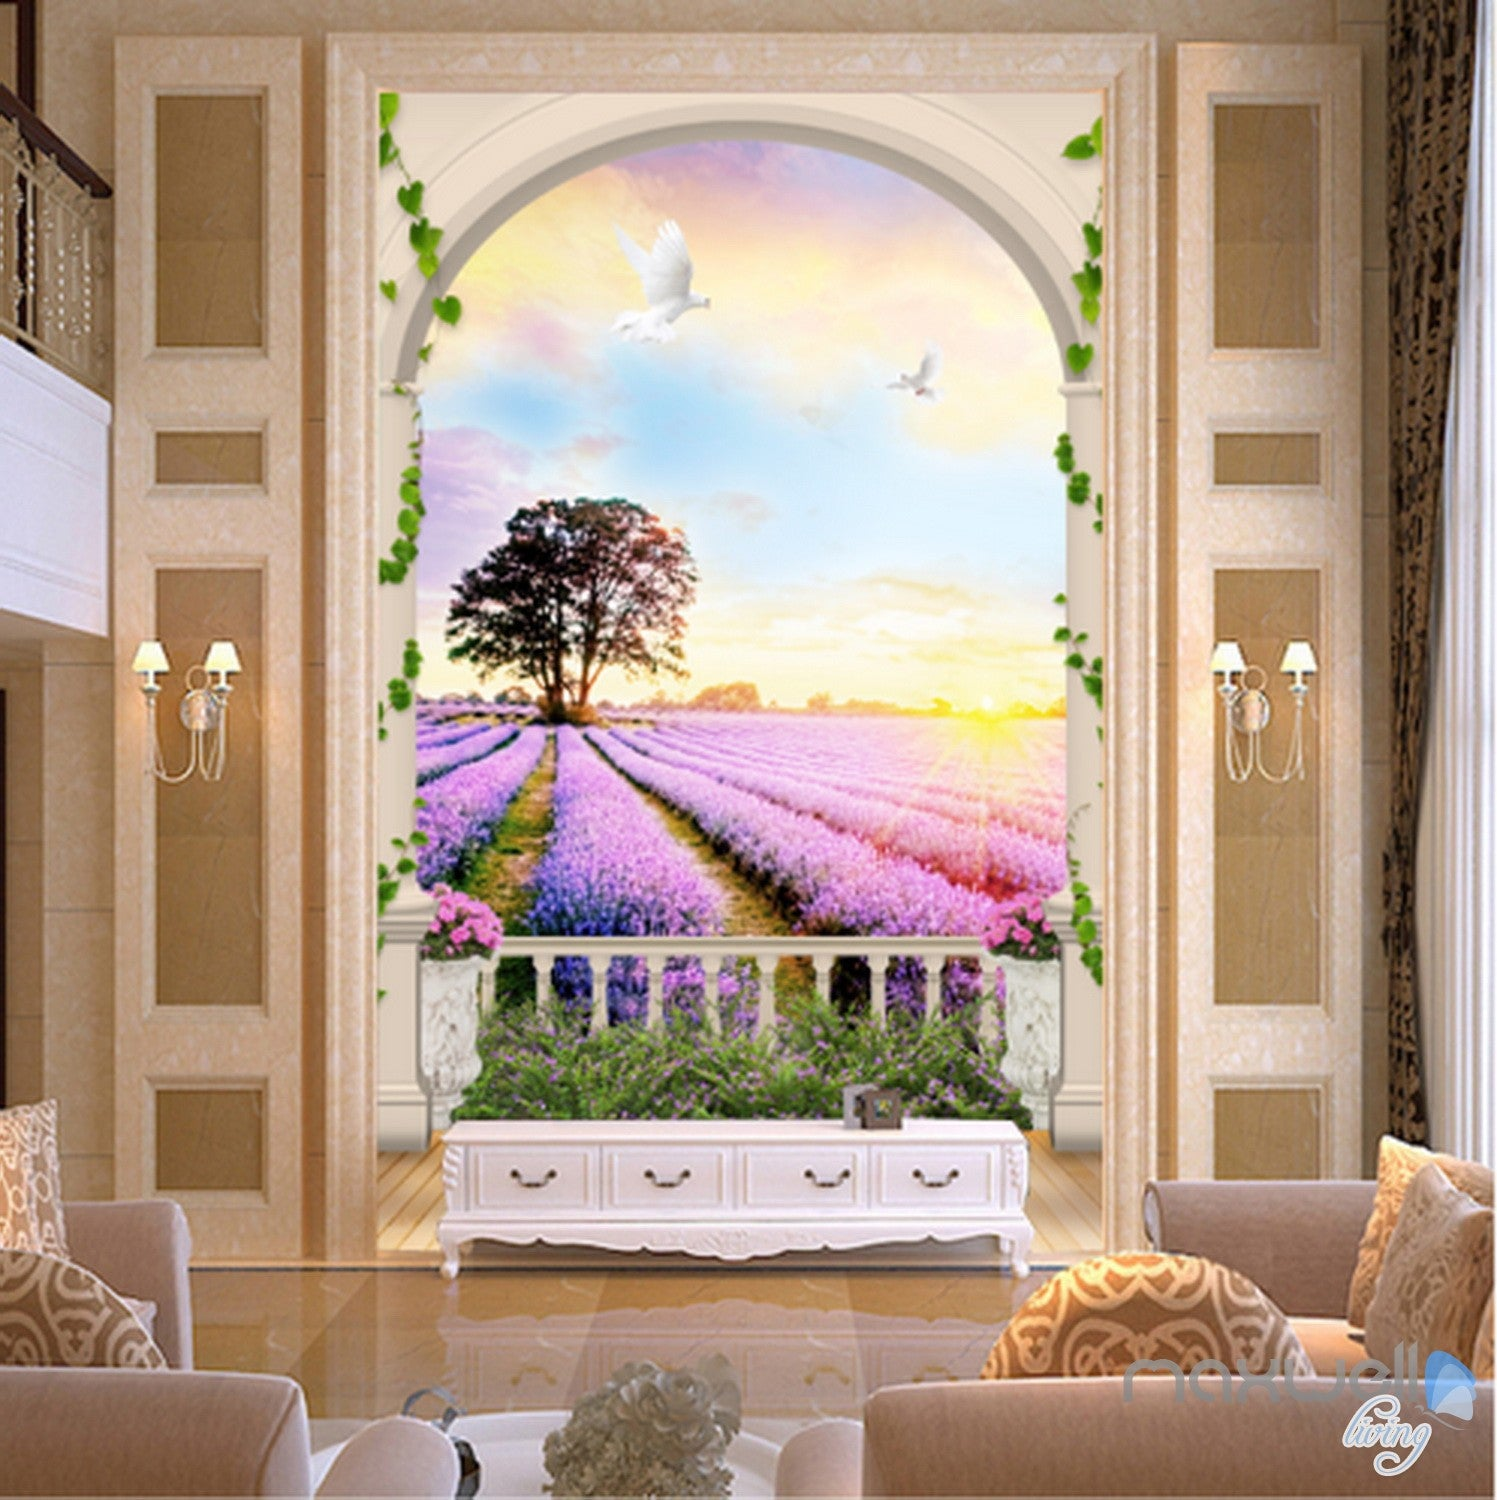 Wall Mural For Living Room 3d Arch Lavender Field Tree Sunrise Entrance Wall Mural Wallpaper